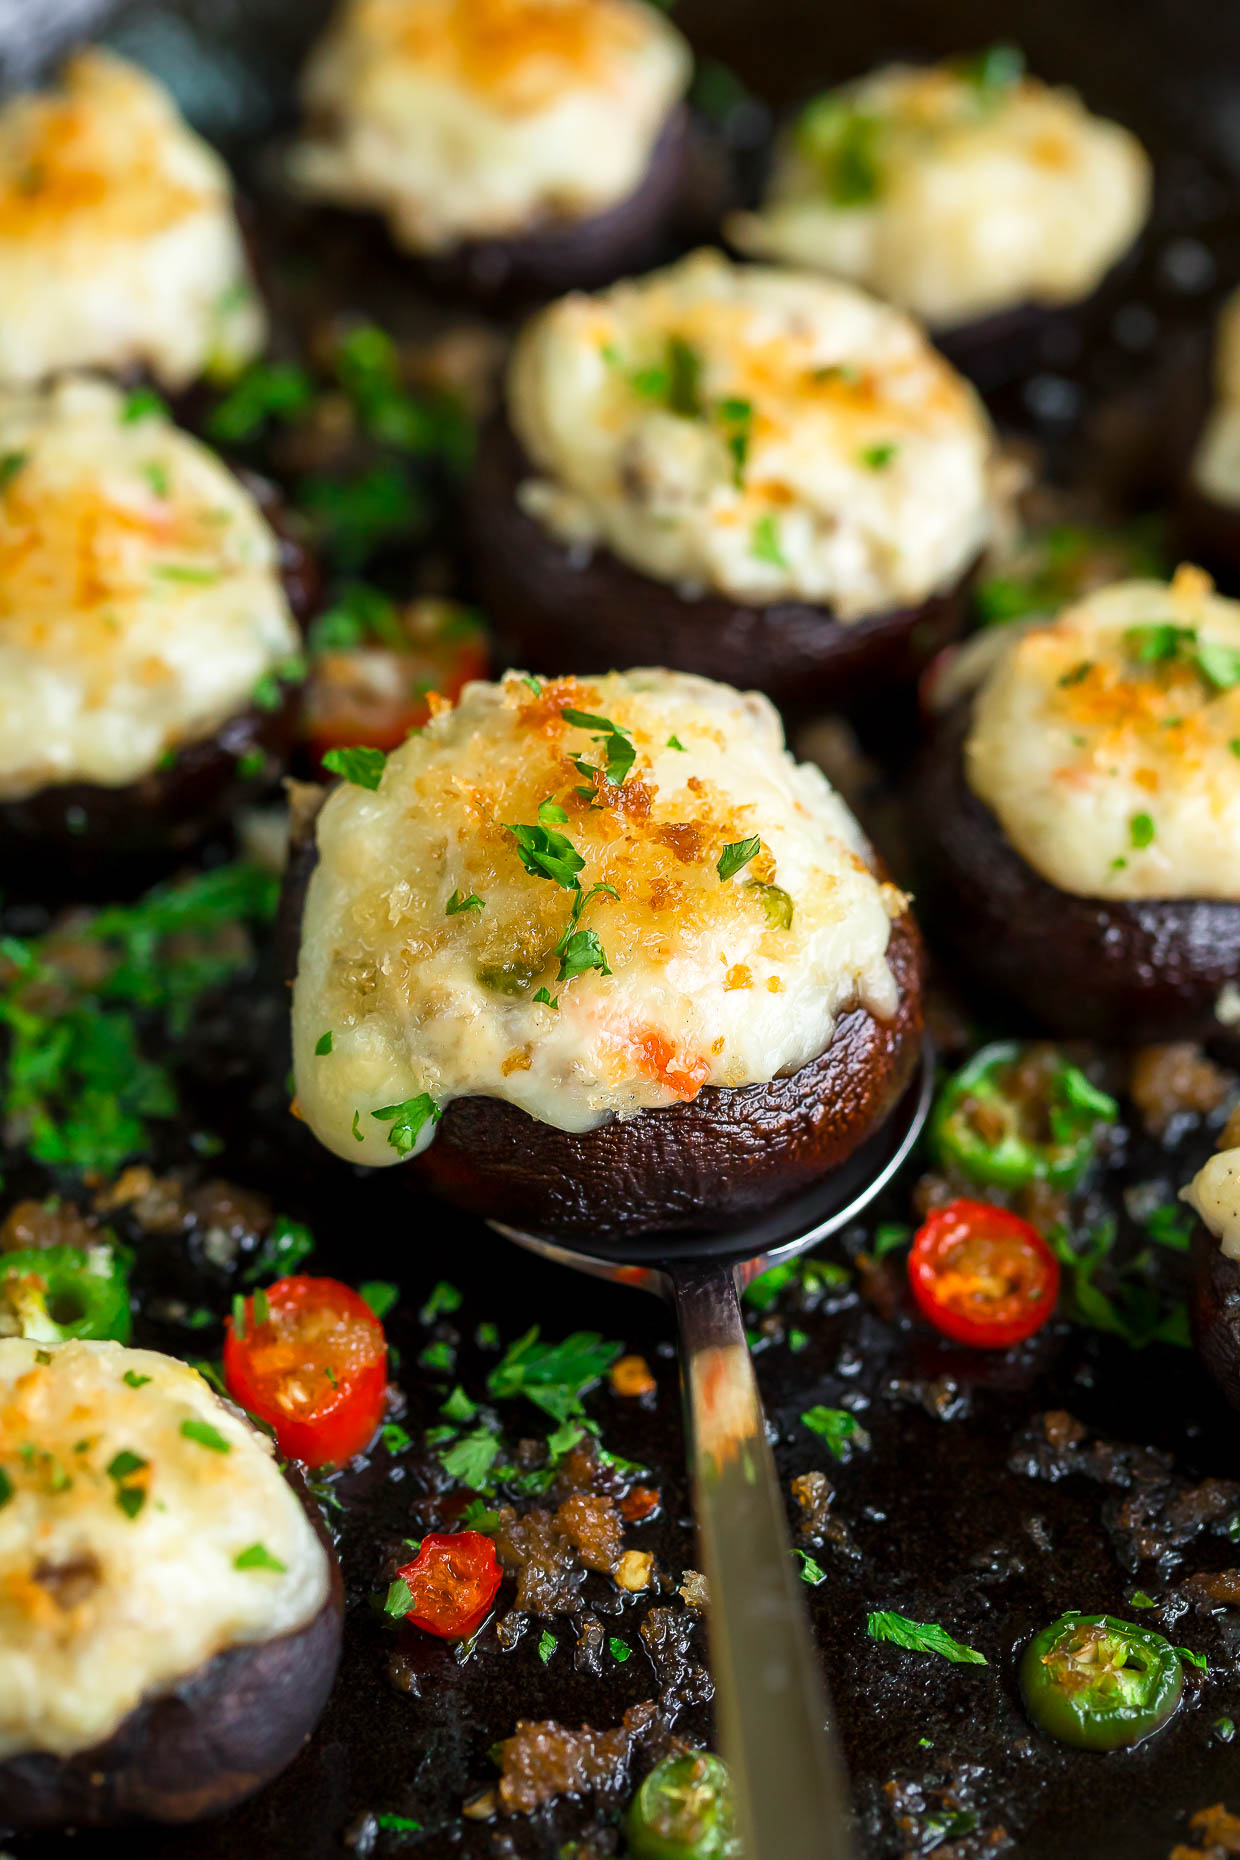 White Cheddar Jalapeño Cream Cheese Stuffed Mushrooms